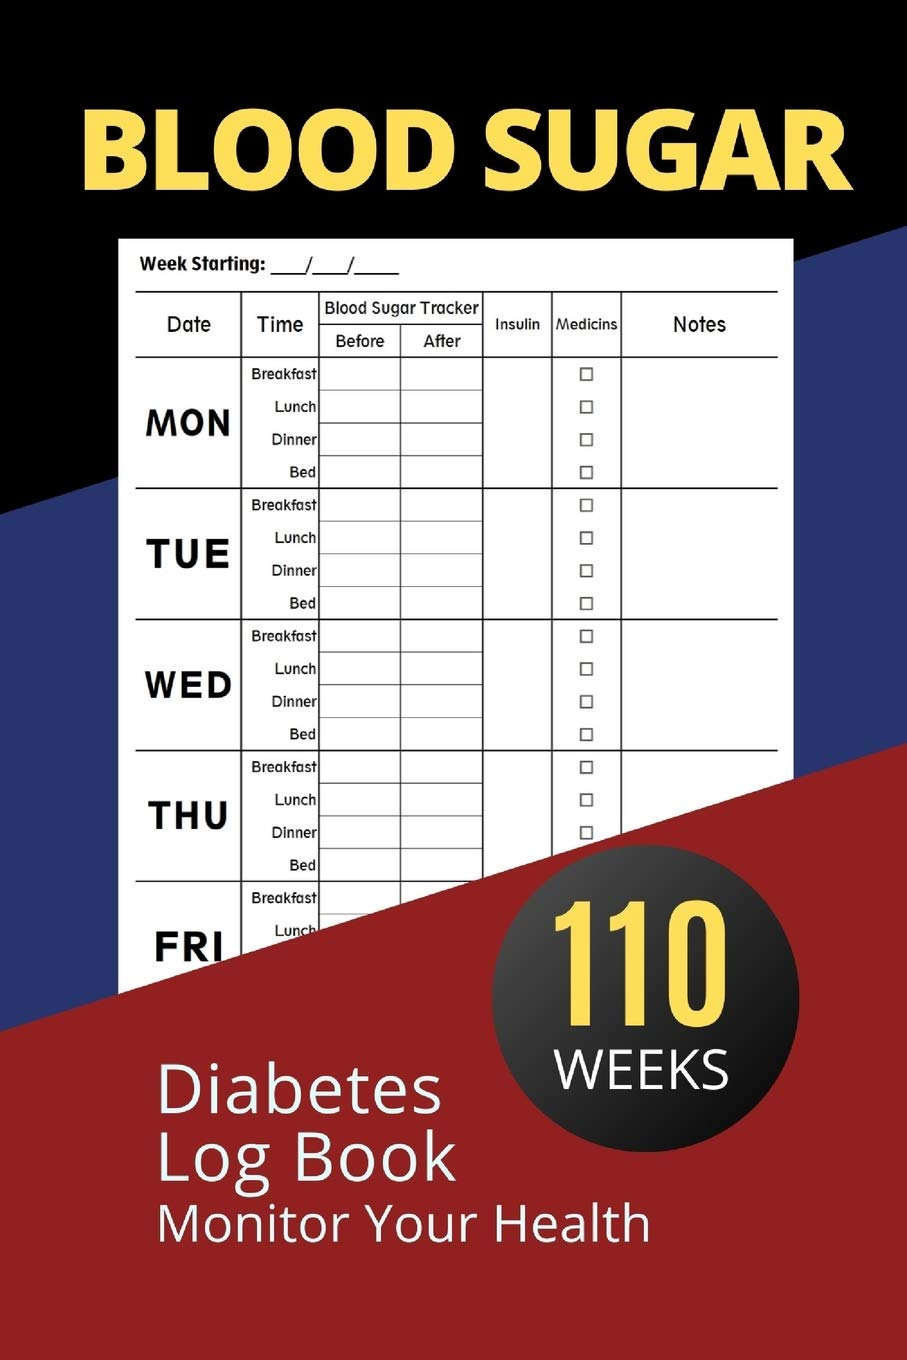 Blood Sugar Diabetes Log Book: Easy Tracking Monitor Blood Sugar and Monitor Your Health, 2-Year Blood Sugar Level Recording Book, Simple Tracking ... , Insulin and Medicines, 110 Weeks